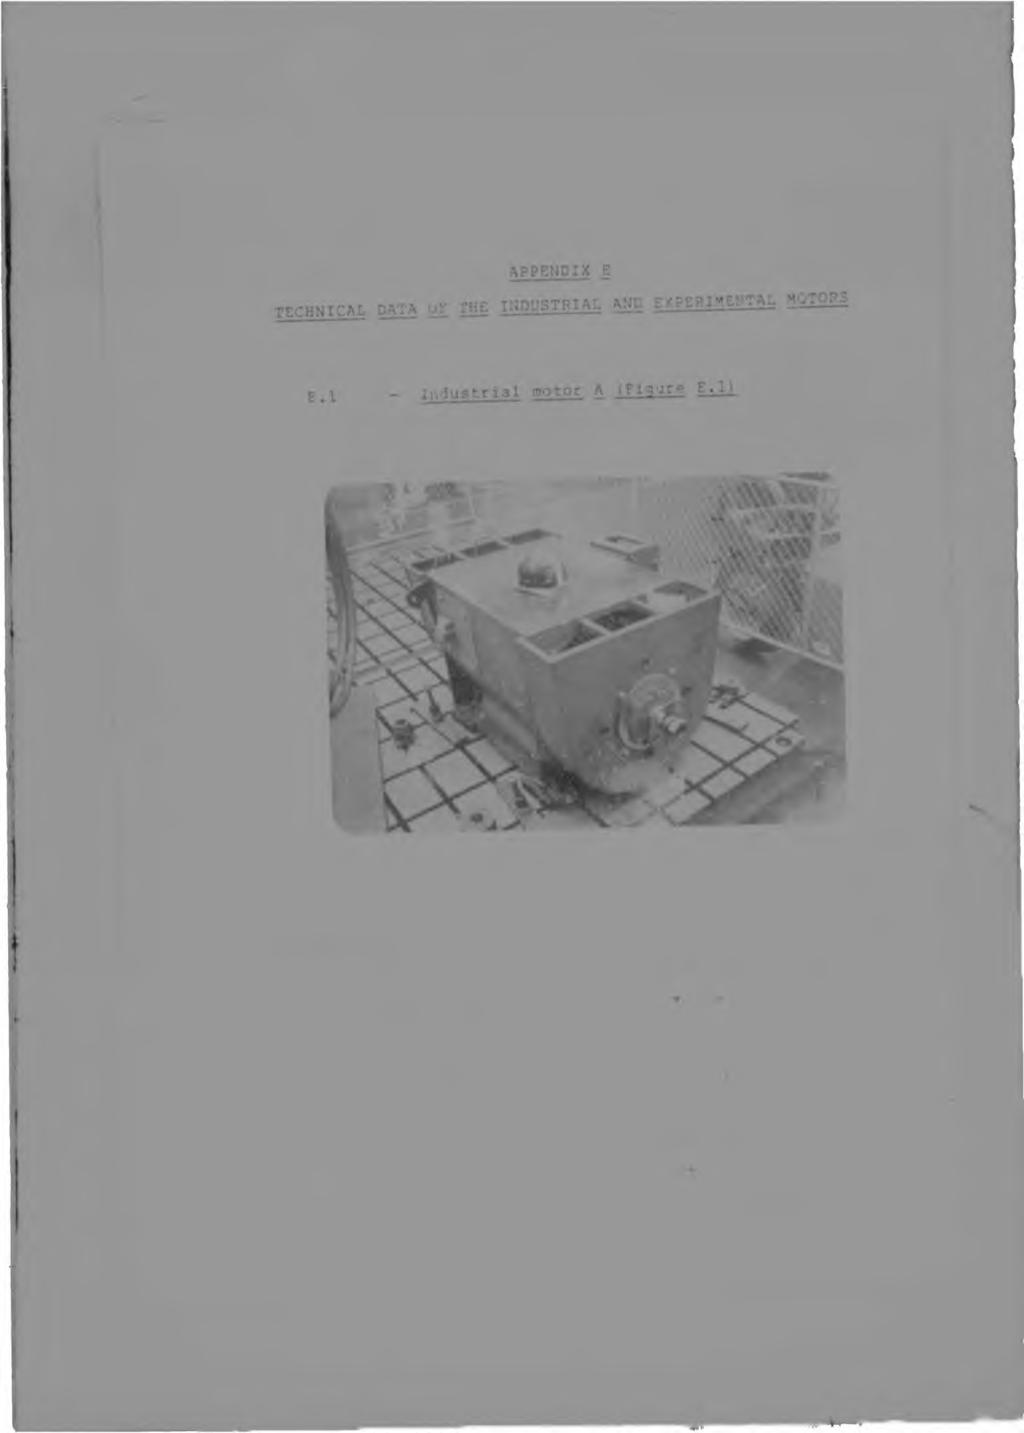 in Figure E.l - Photograph of industrial motor A.